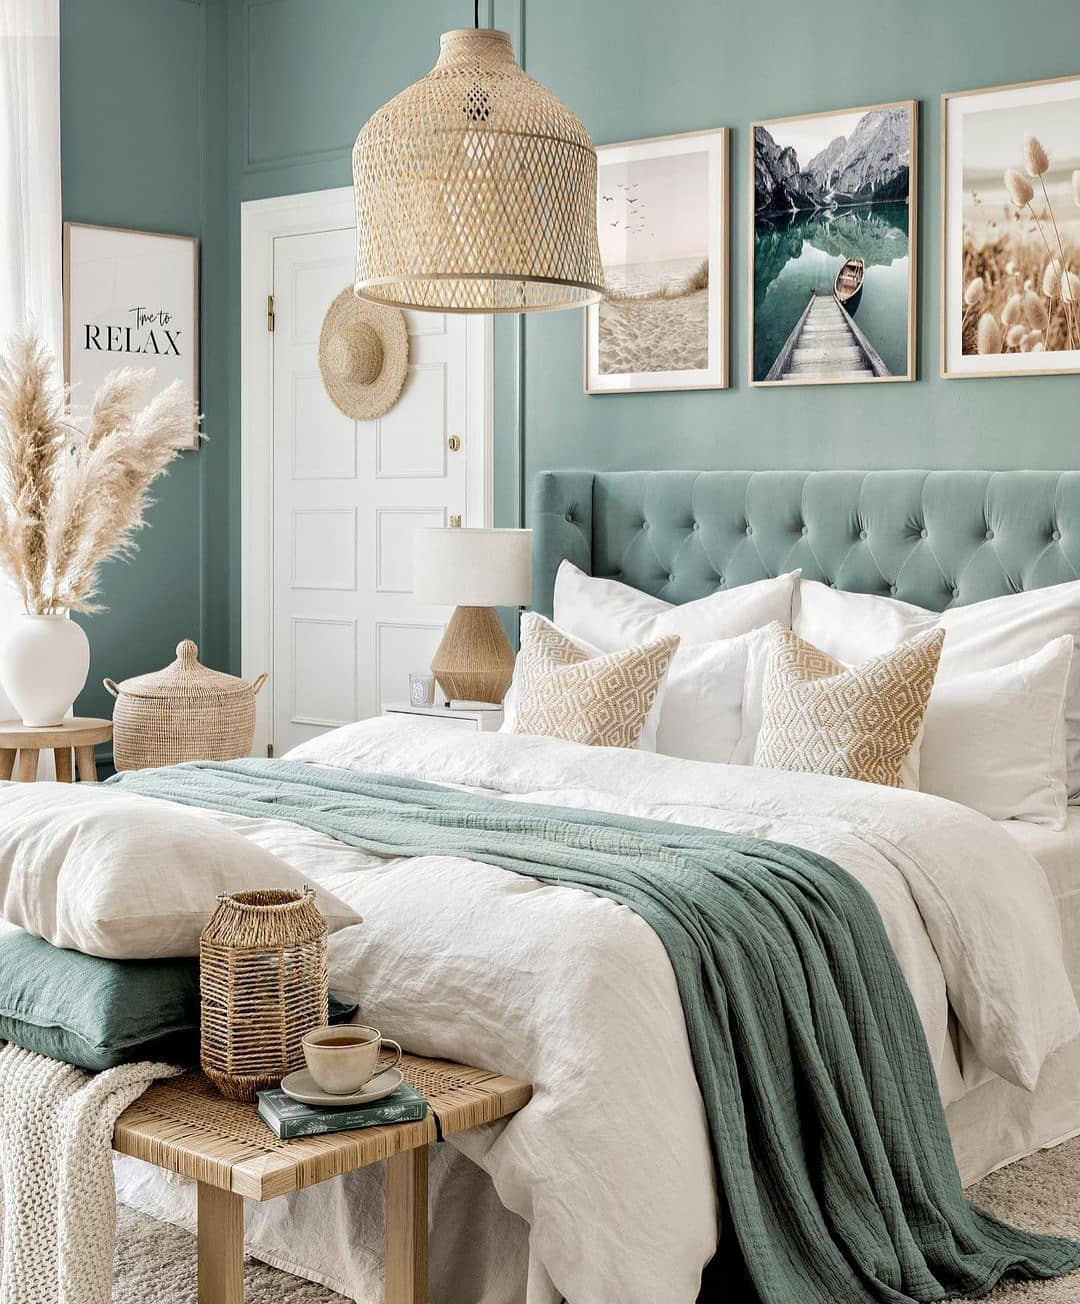 How To Feng Shui Your Bedroom The Ultimate Guide Decoholic